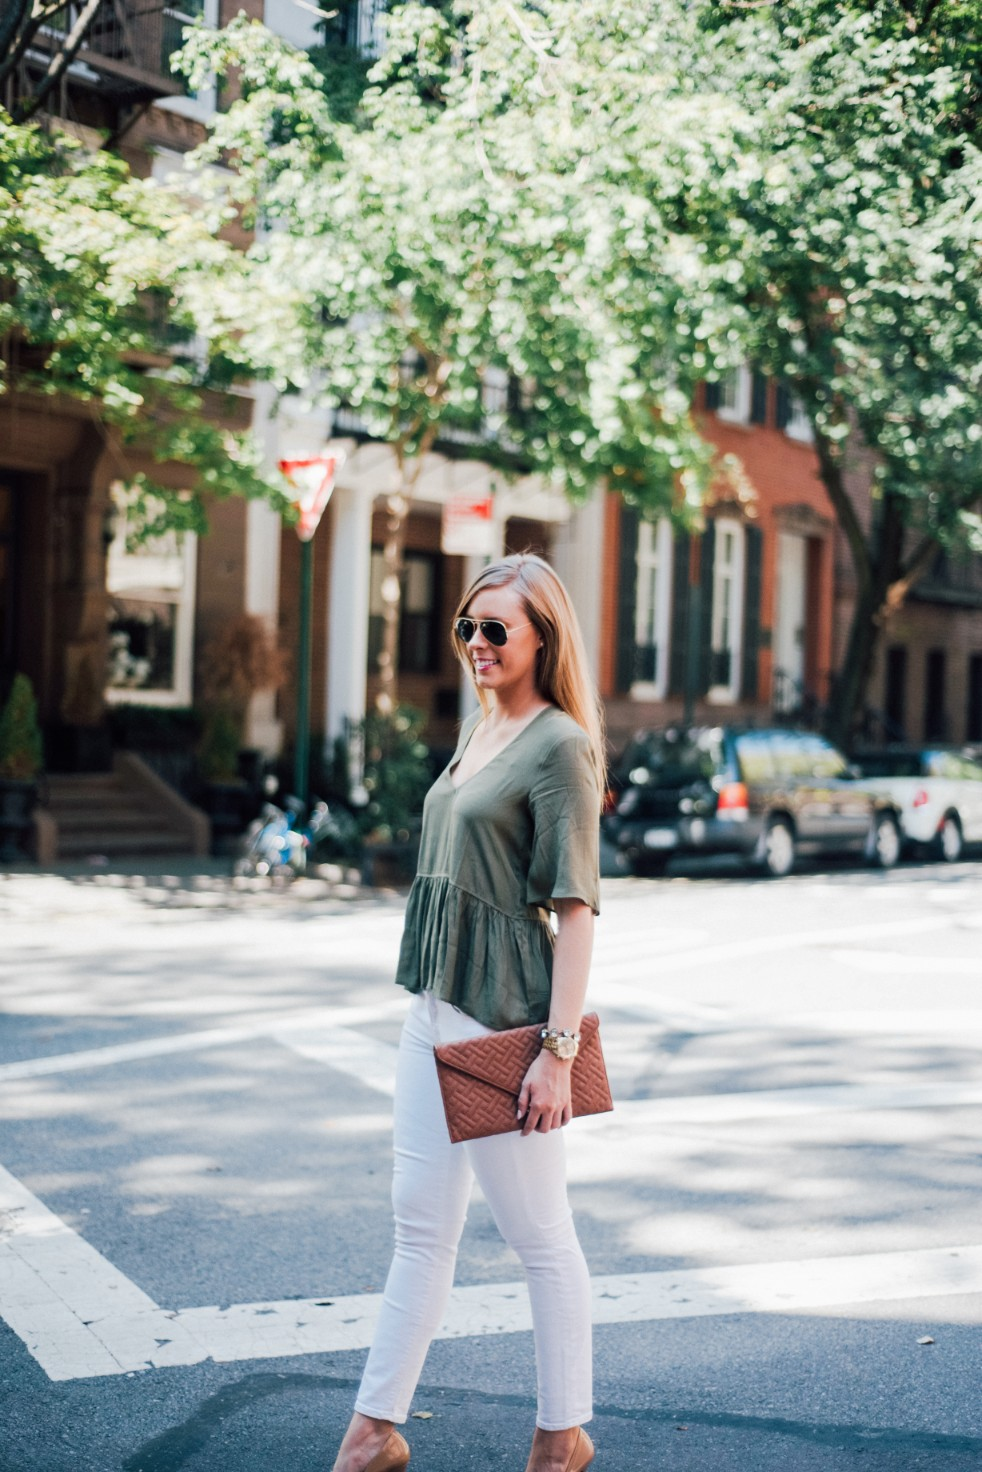 white jeans and peplum top west village fashion new york fashion blogger lauren slade style elixir blog spring outfit ideas 5 - Style Sessions - White Jeans and Peplum Top in the West Village featured by popular US style blogger, Style Elixir